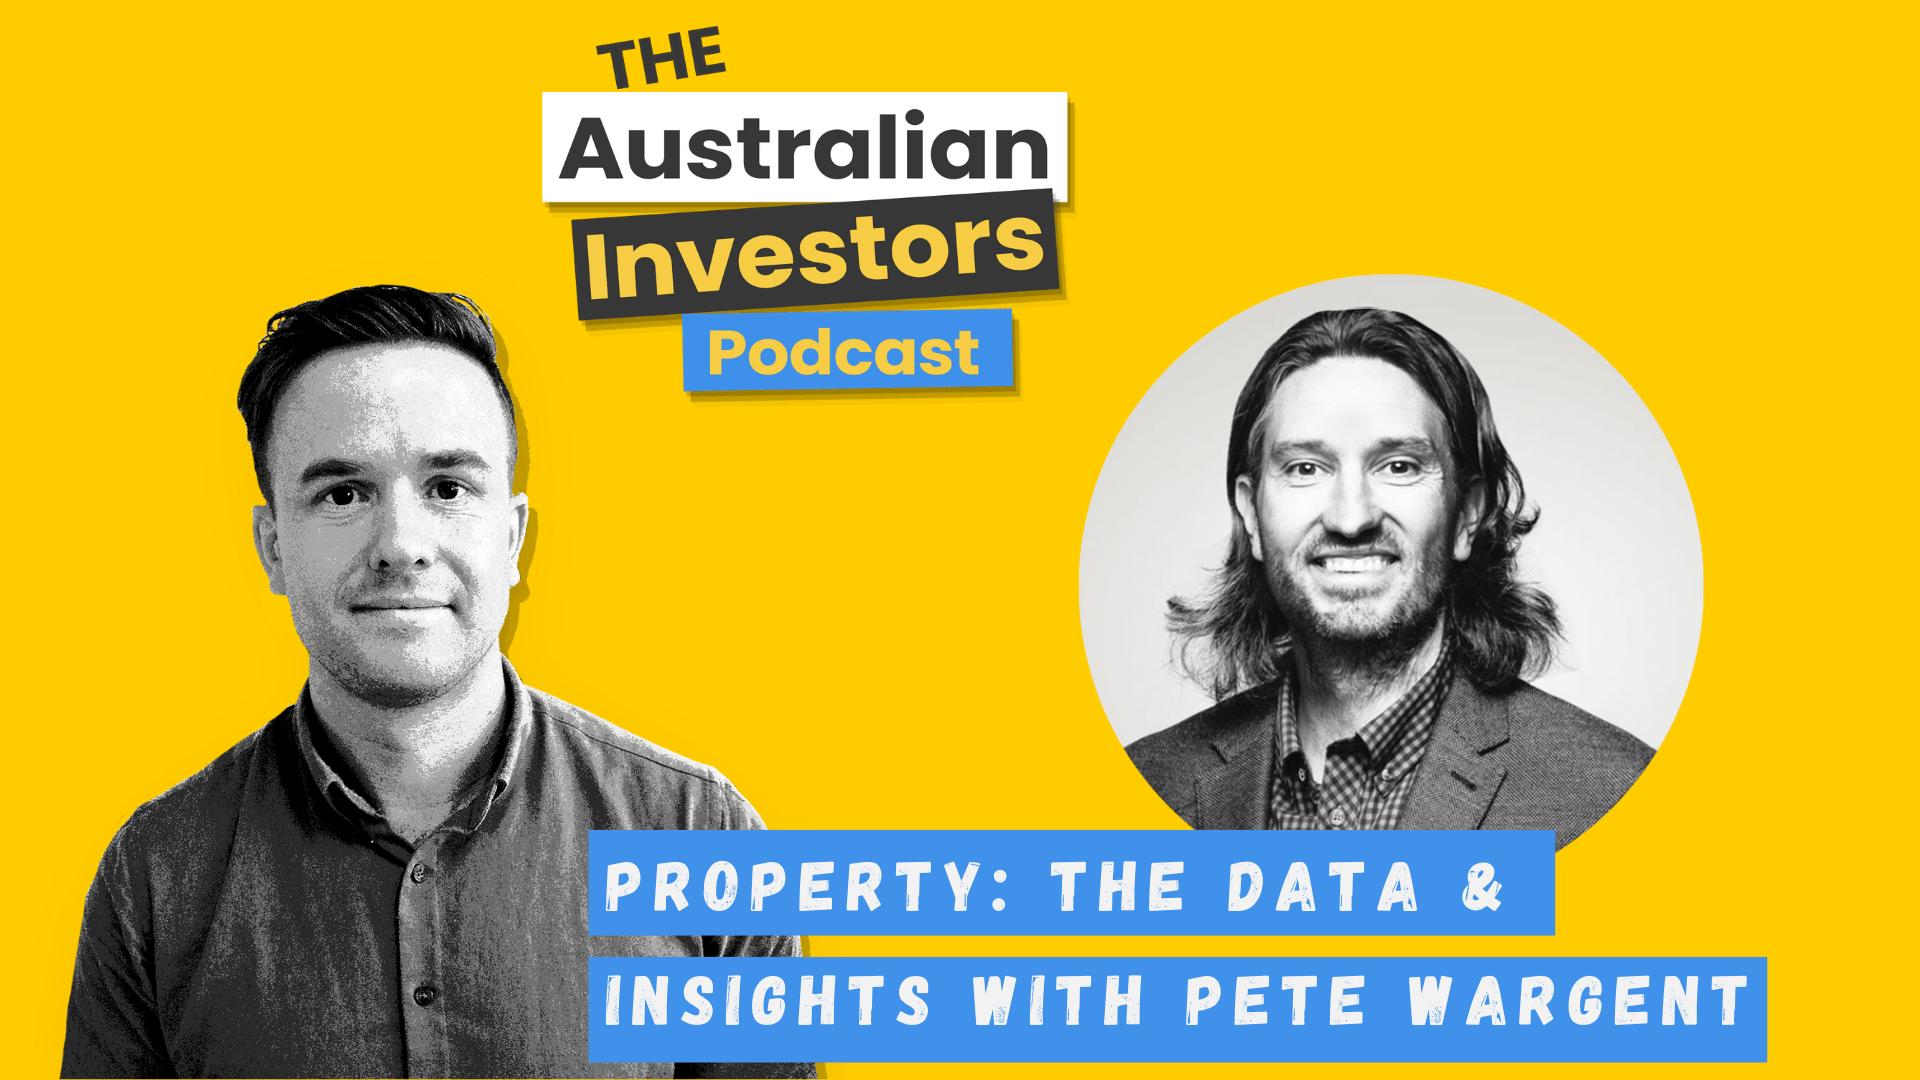 Pete Wargent on The Australian Investors Podcast